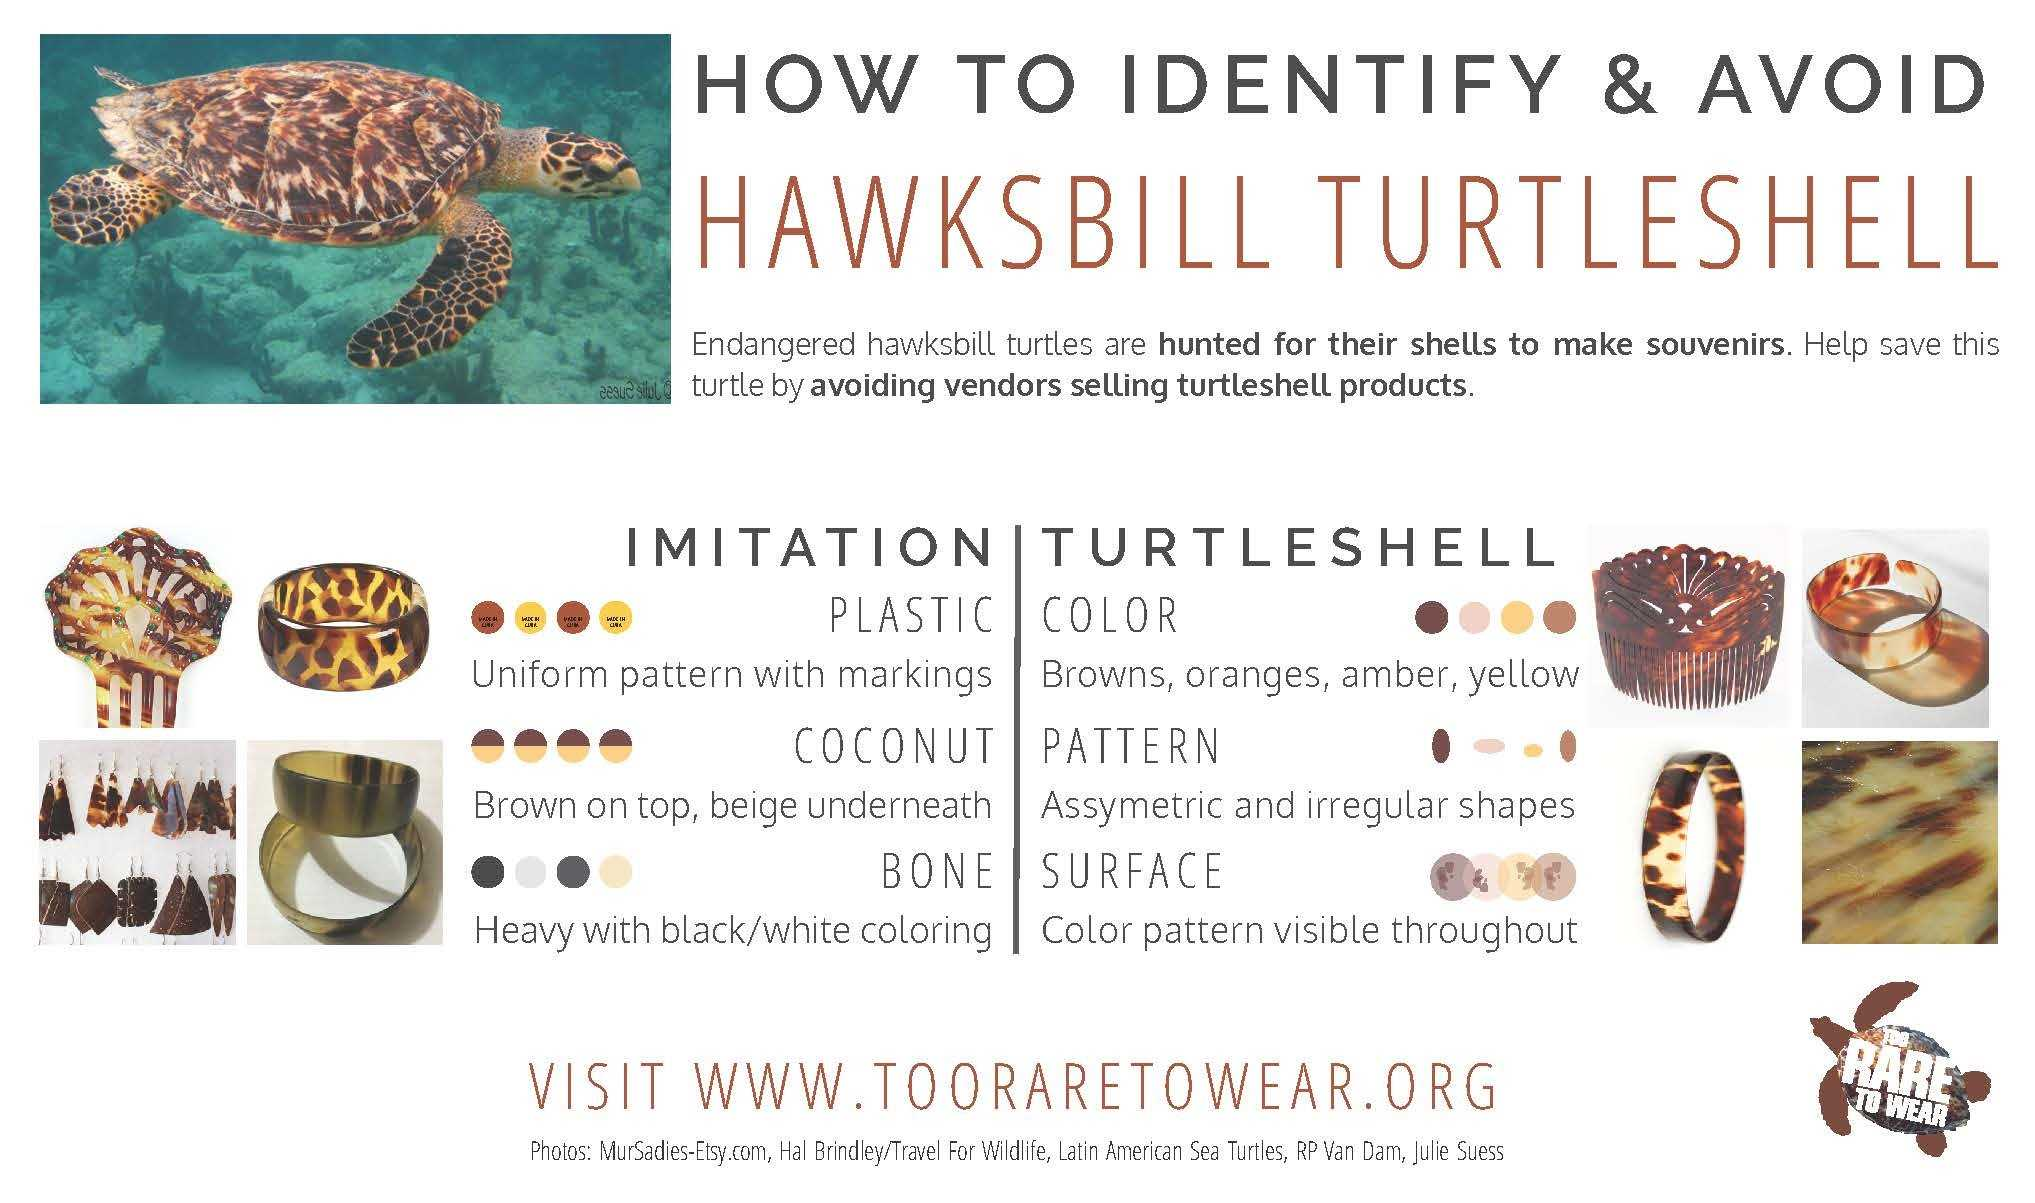 Too Rare to Wear: how to identify turtleshell